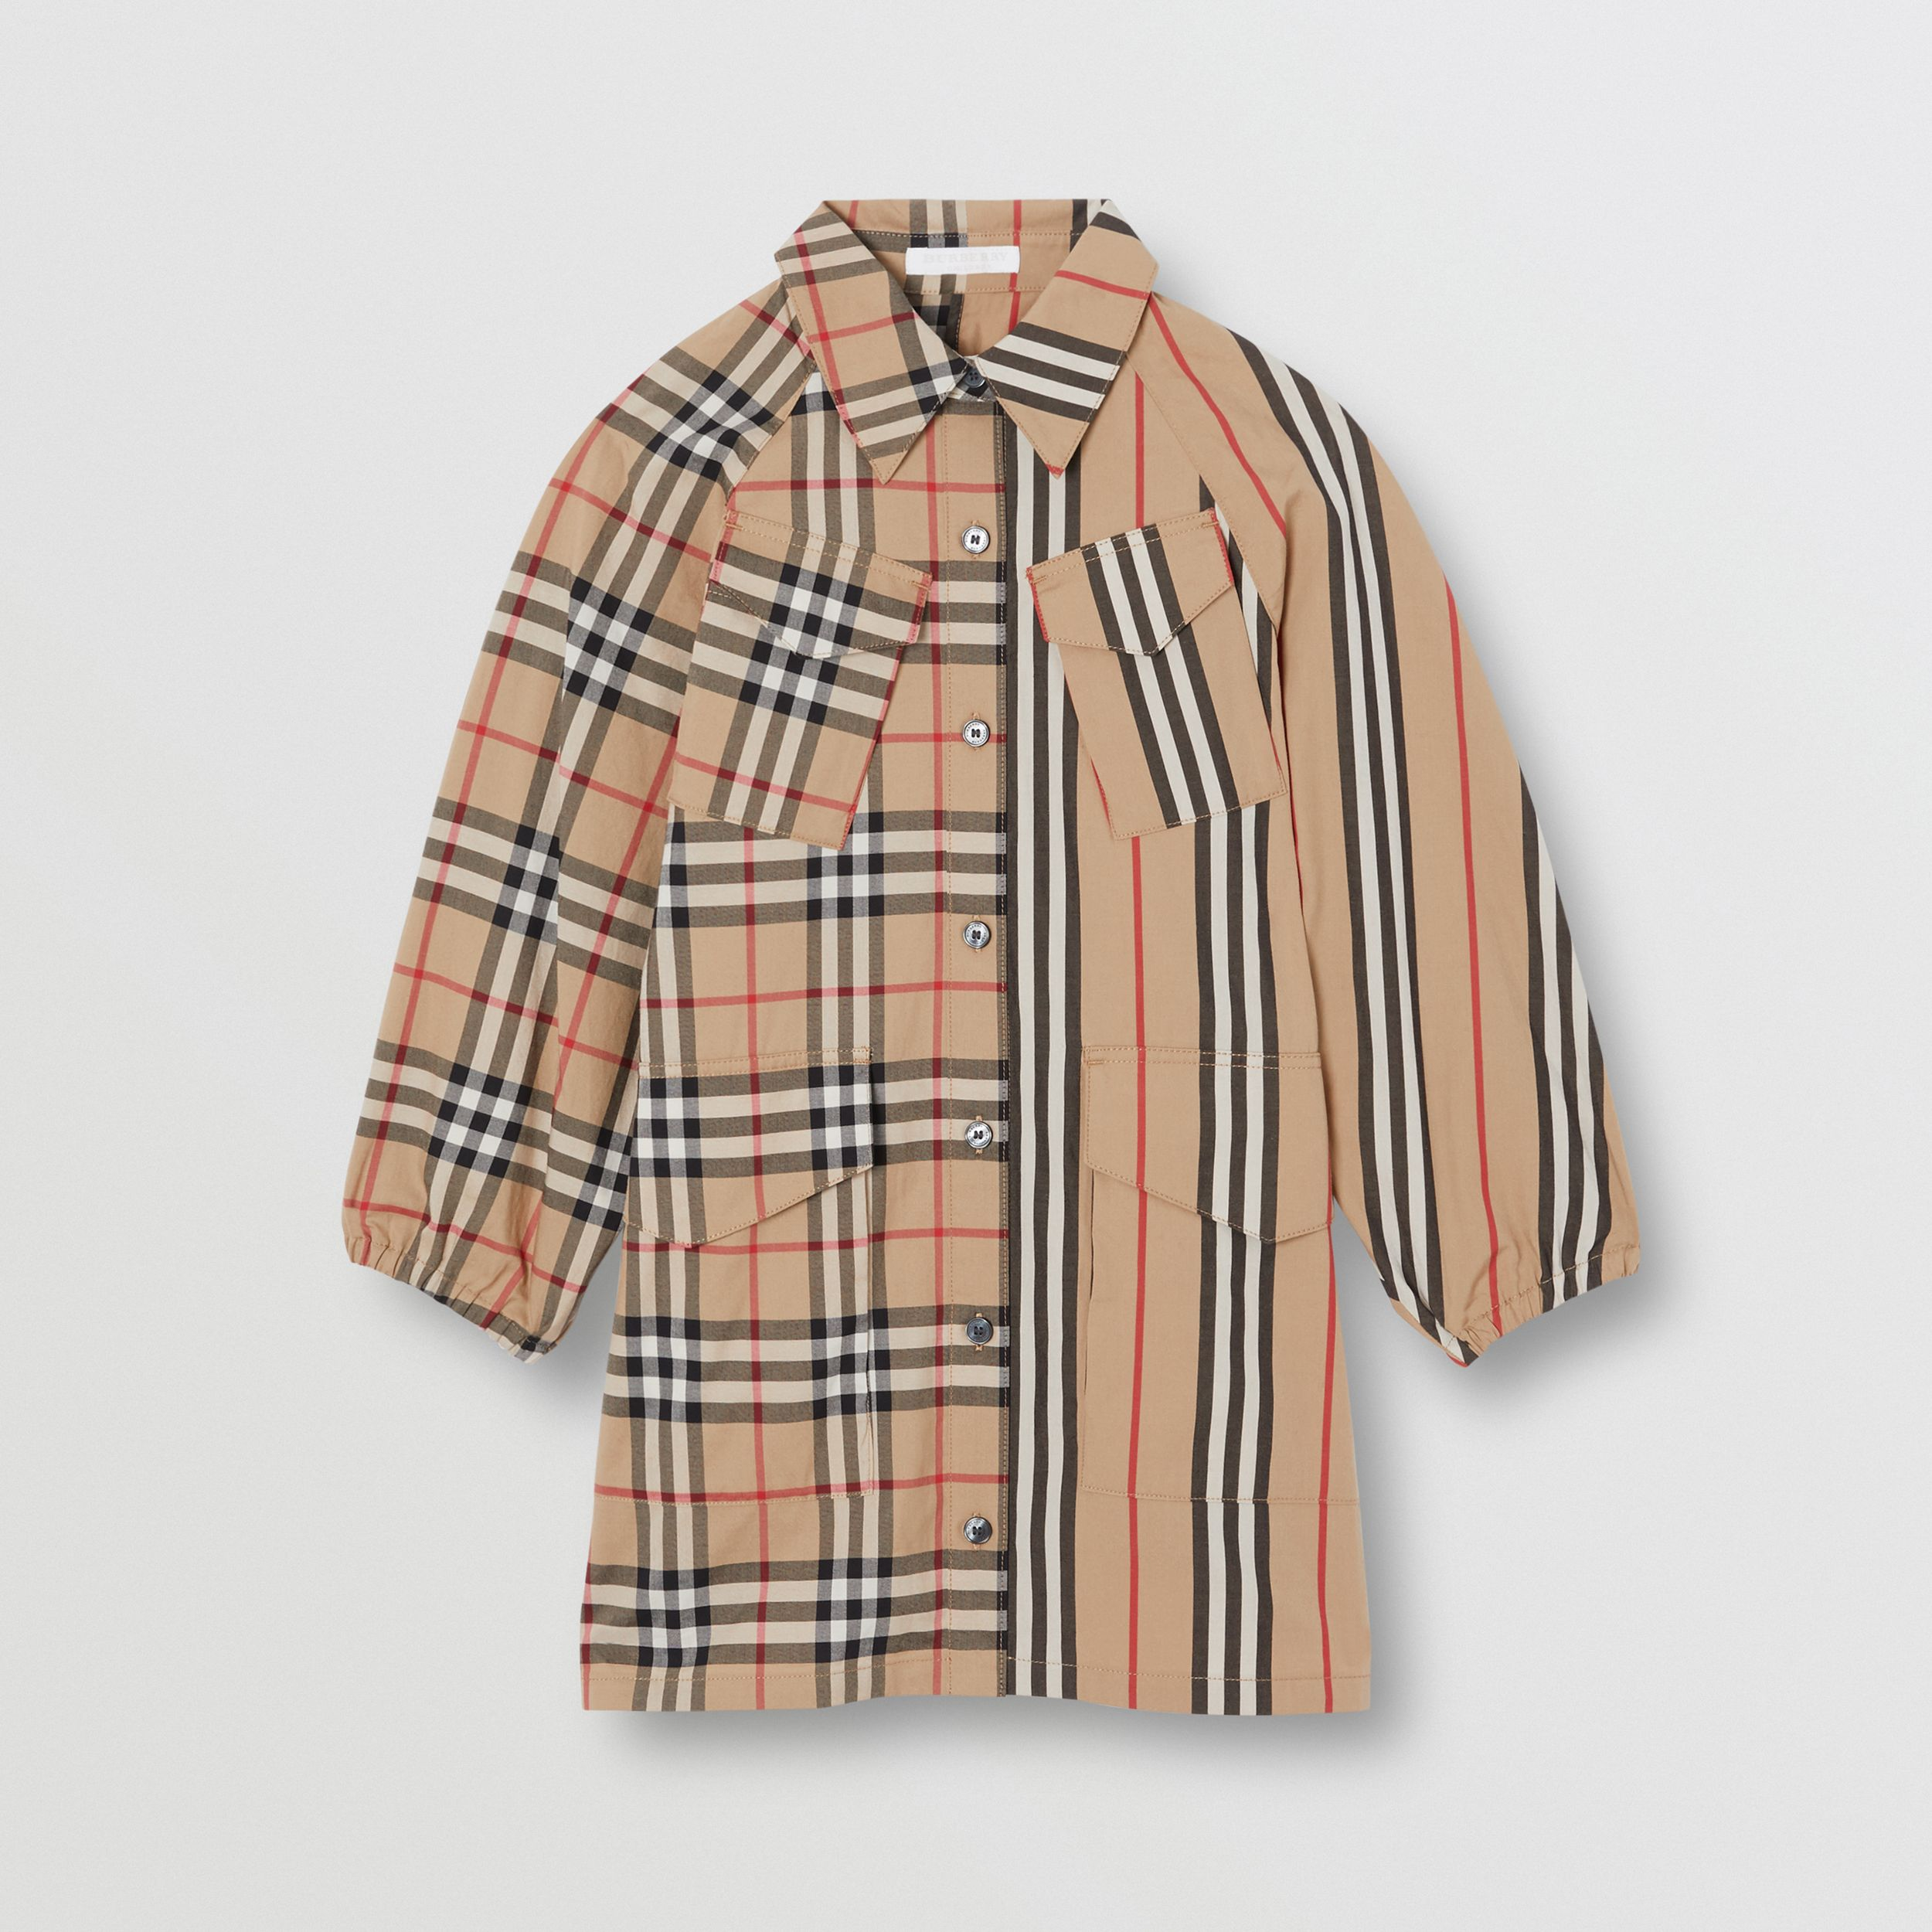 Vintage Check and Icon Stripe Cotton Shirt Dress in Archive Beige | Burberry - 1